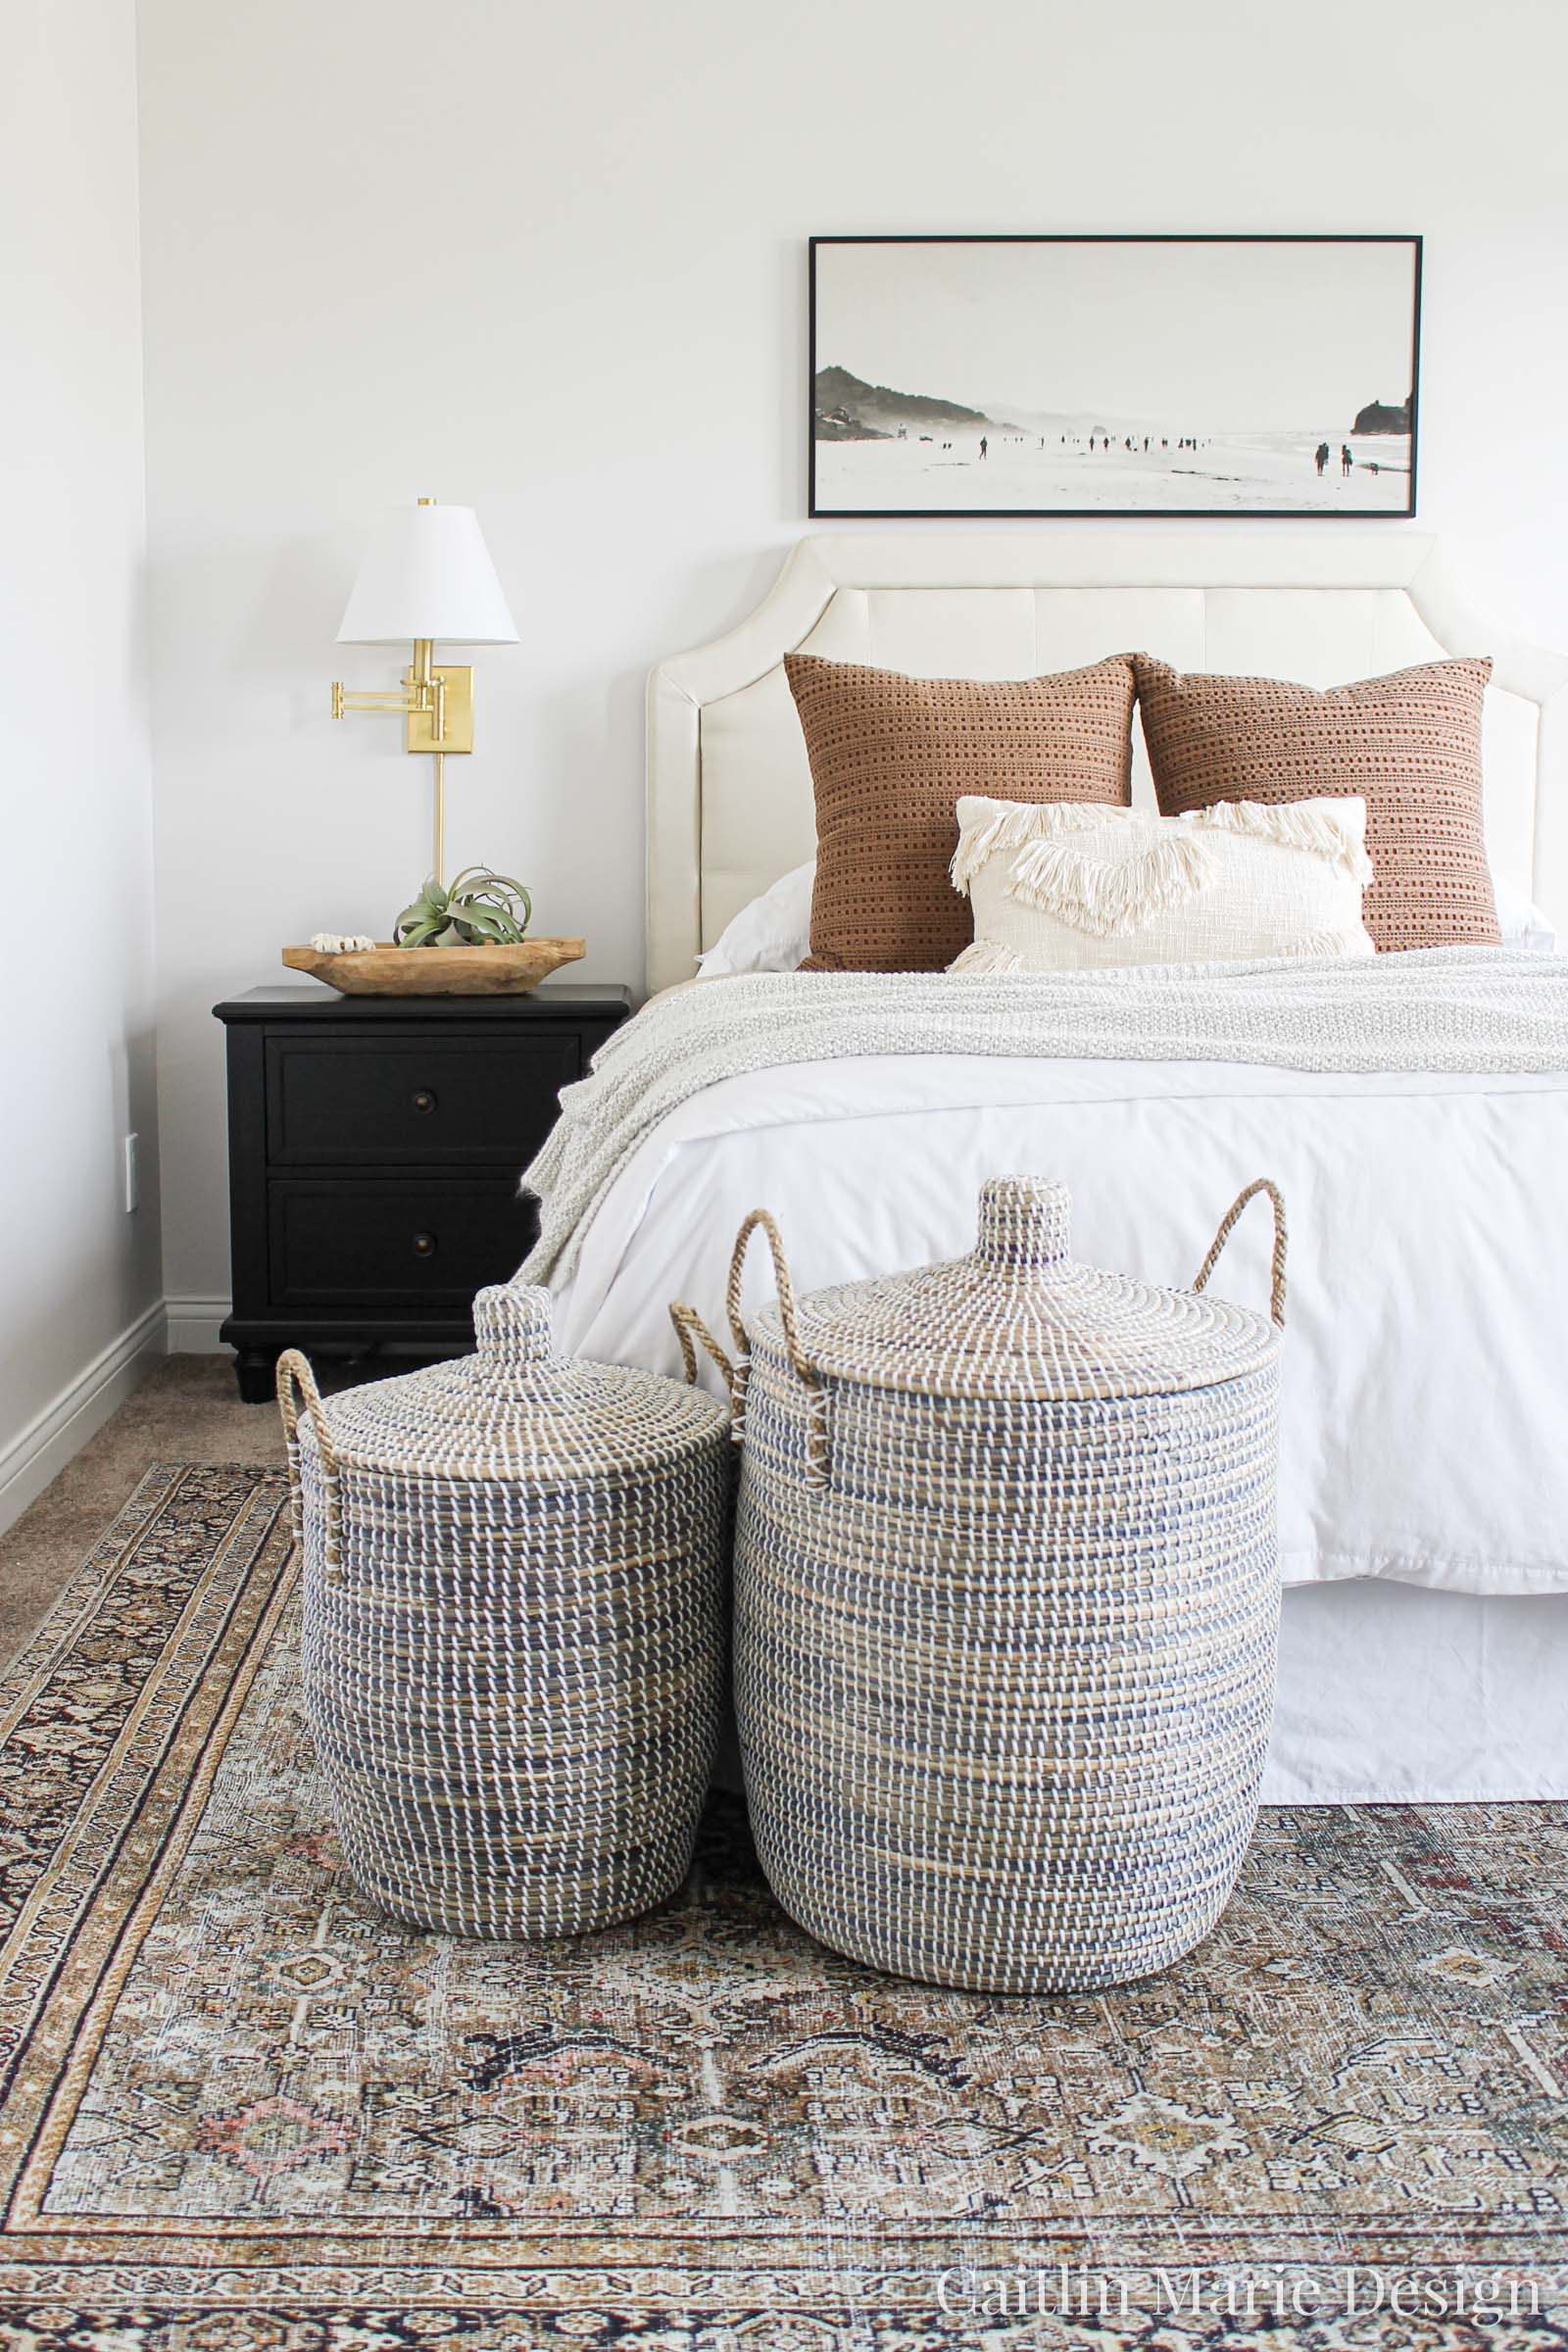 Interior Photography Tips for Designers and Bloggers | brass swing arm sconces, modern traditional decor, loloi Layla rug